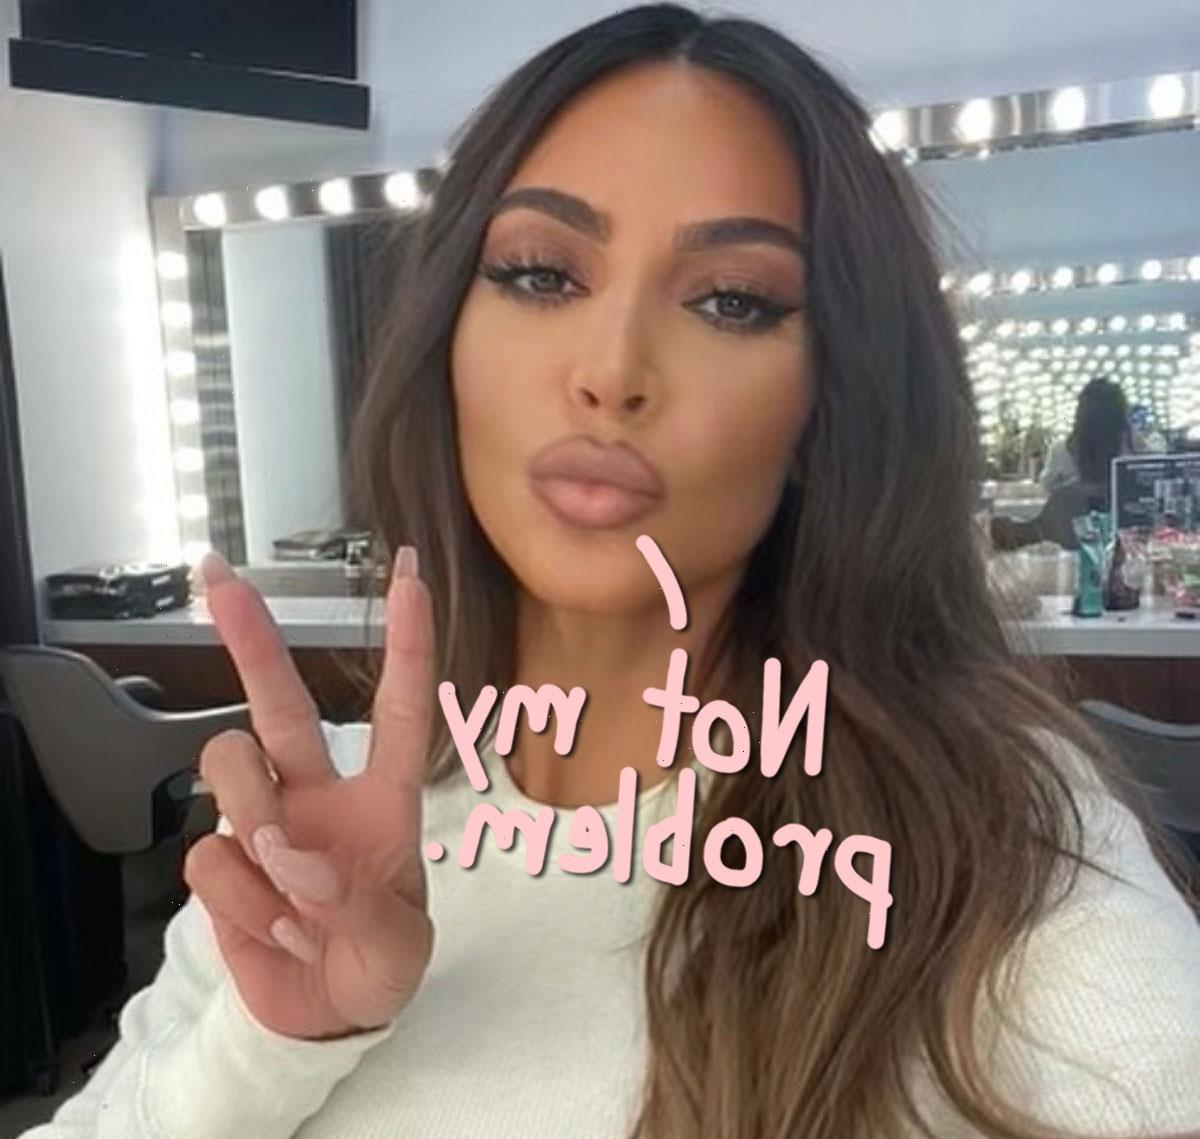 Kim Kardashian Claims She's 'Not Responsible' For Domestic Staff Lawsuit – Here's Her Reasoning